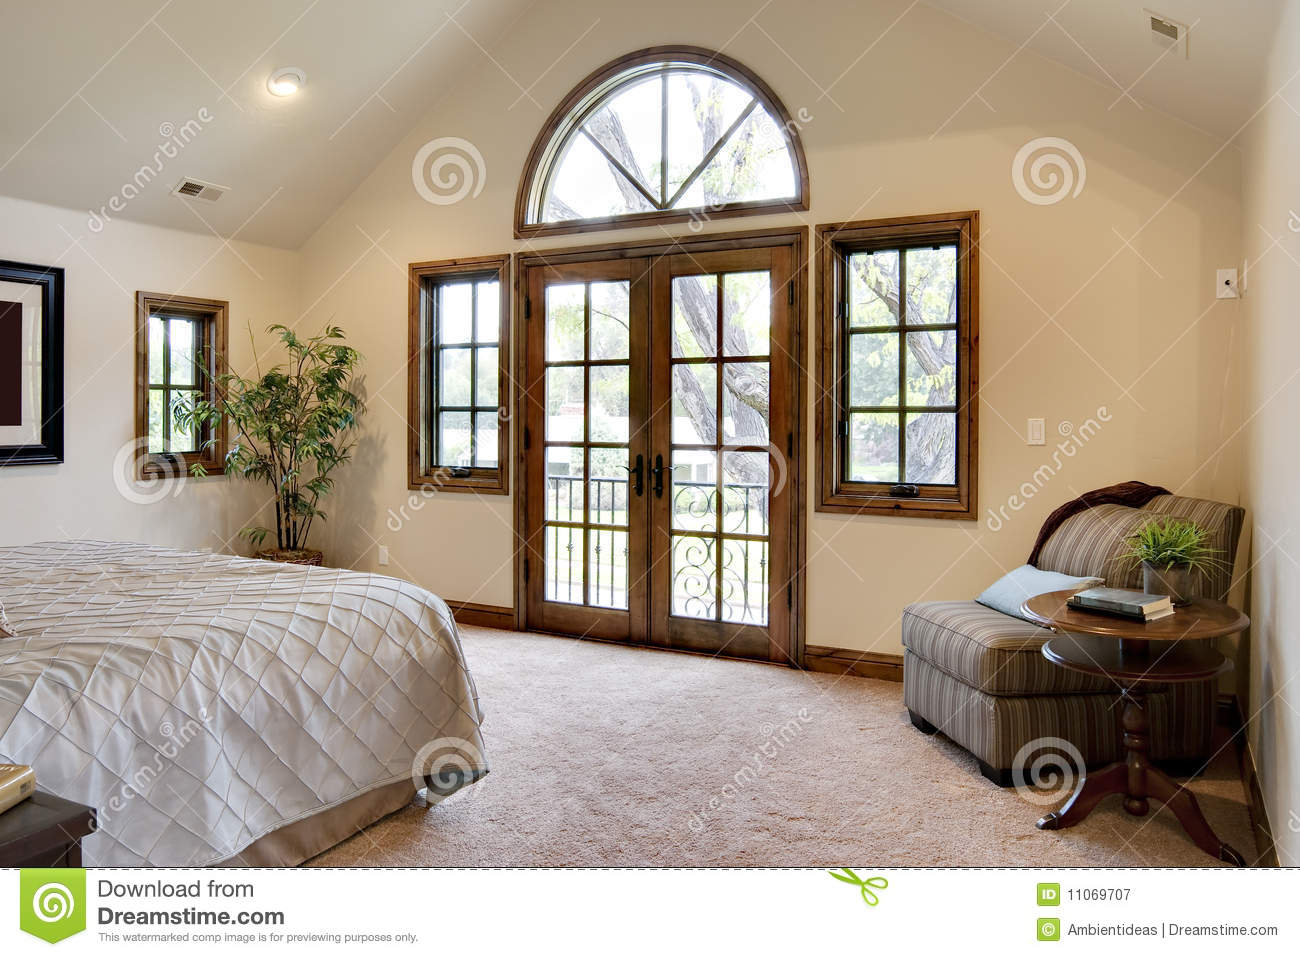 Bedroom With French Door Balcony Stock Image - Image of ...